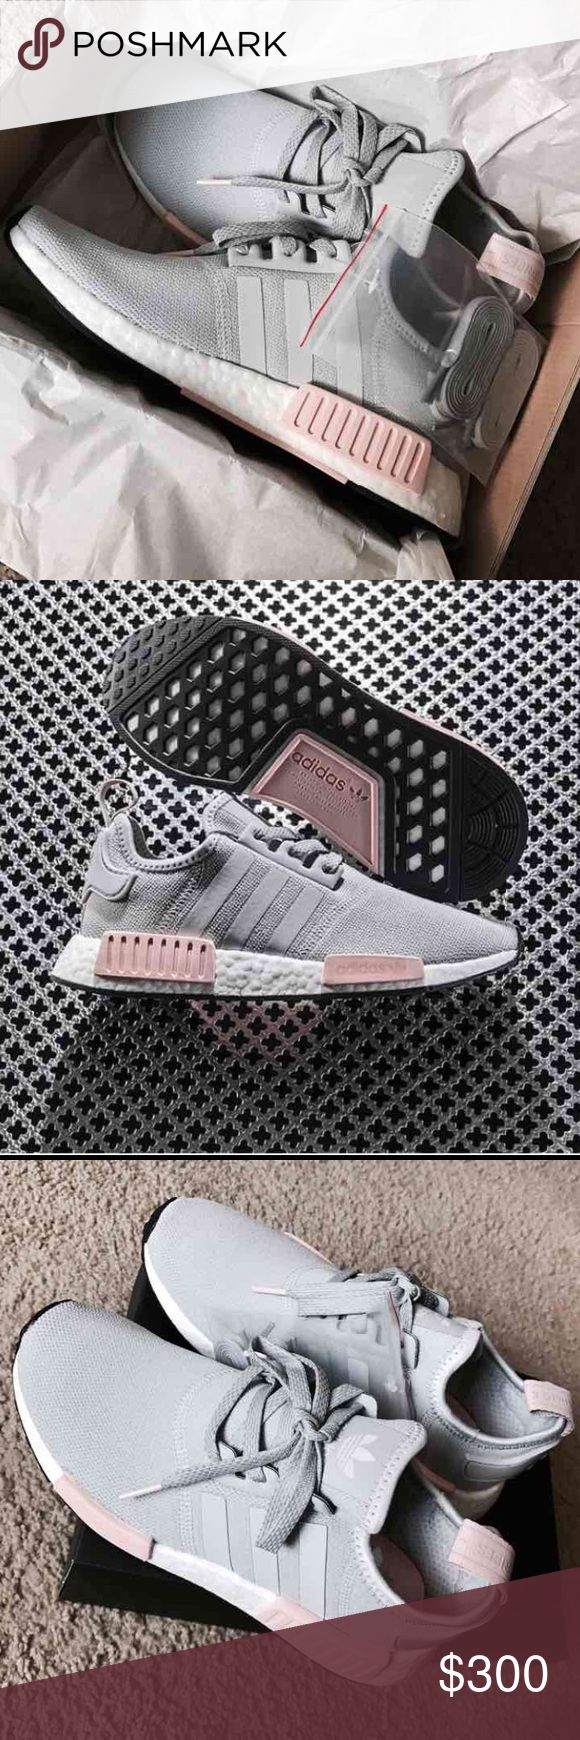 New Adidas NMD R1 Onyx Grey NO TRADES•••• New Women Adidas NMD. Featherweight sneakers with the adidas boost cushioning. Upper is made of suede and neoprene which makes these. Also have EVA foam plugs which provides more comfort for the underfoot. Have the classic 3 stripes.  Colorway : Onyx grey  #adidas #NMD #boost #women #yeezy White talc cream salmon pink Adidas Shoes Sneakers